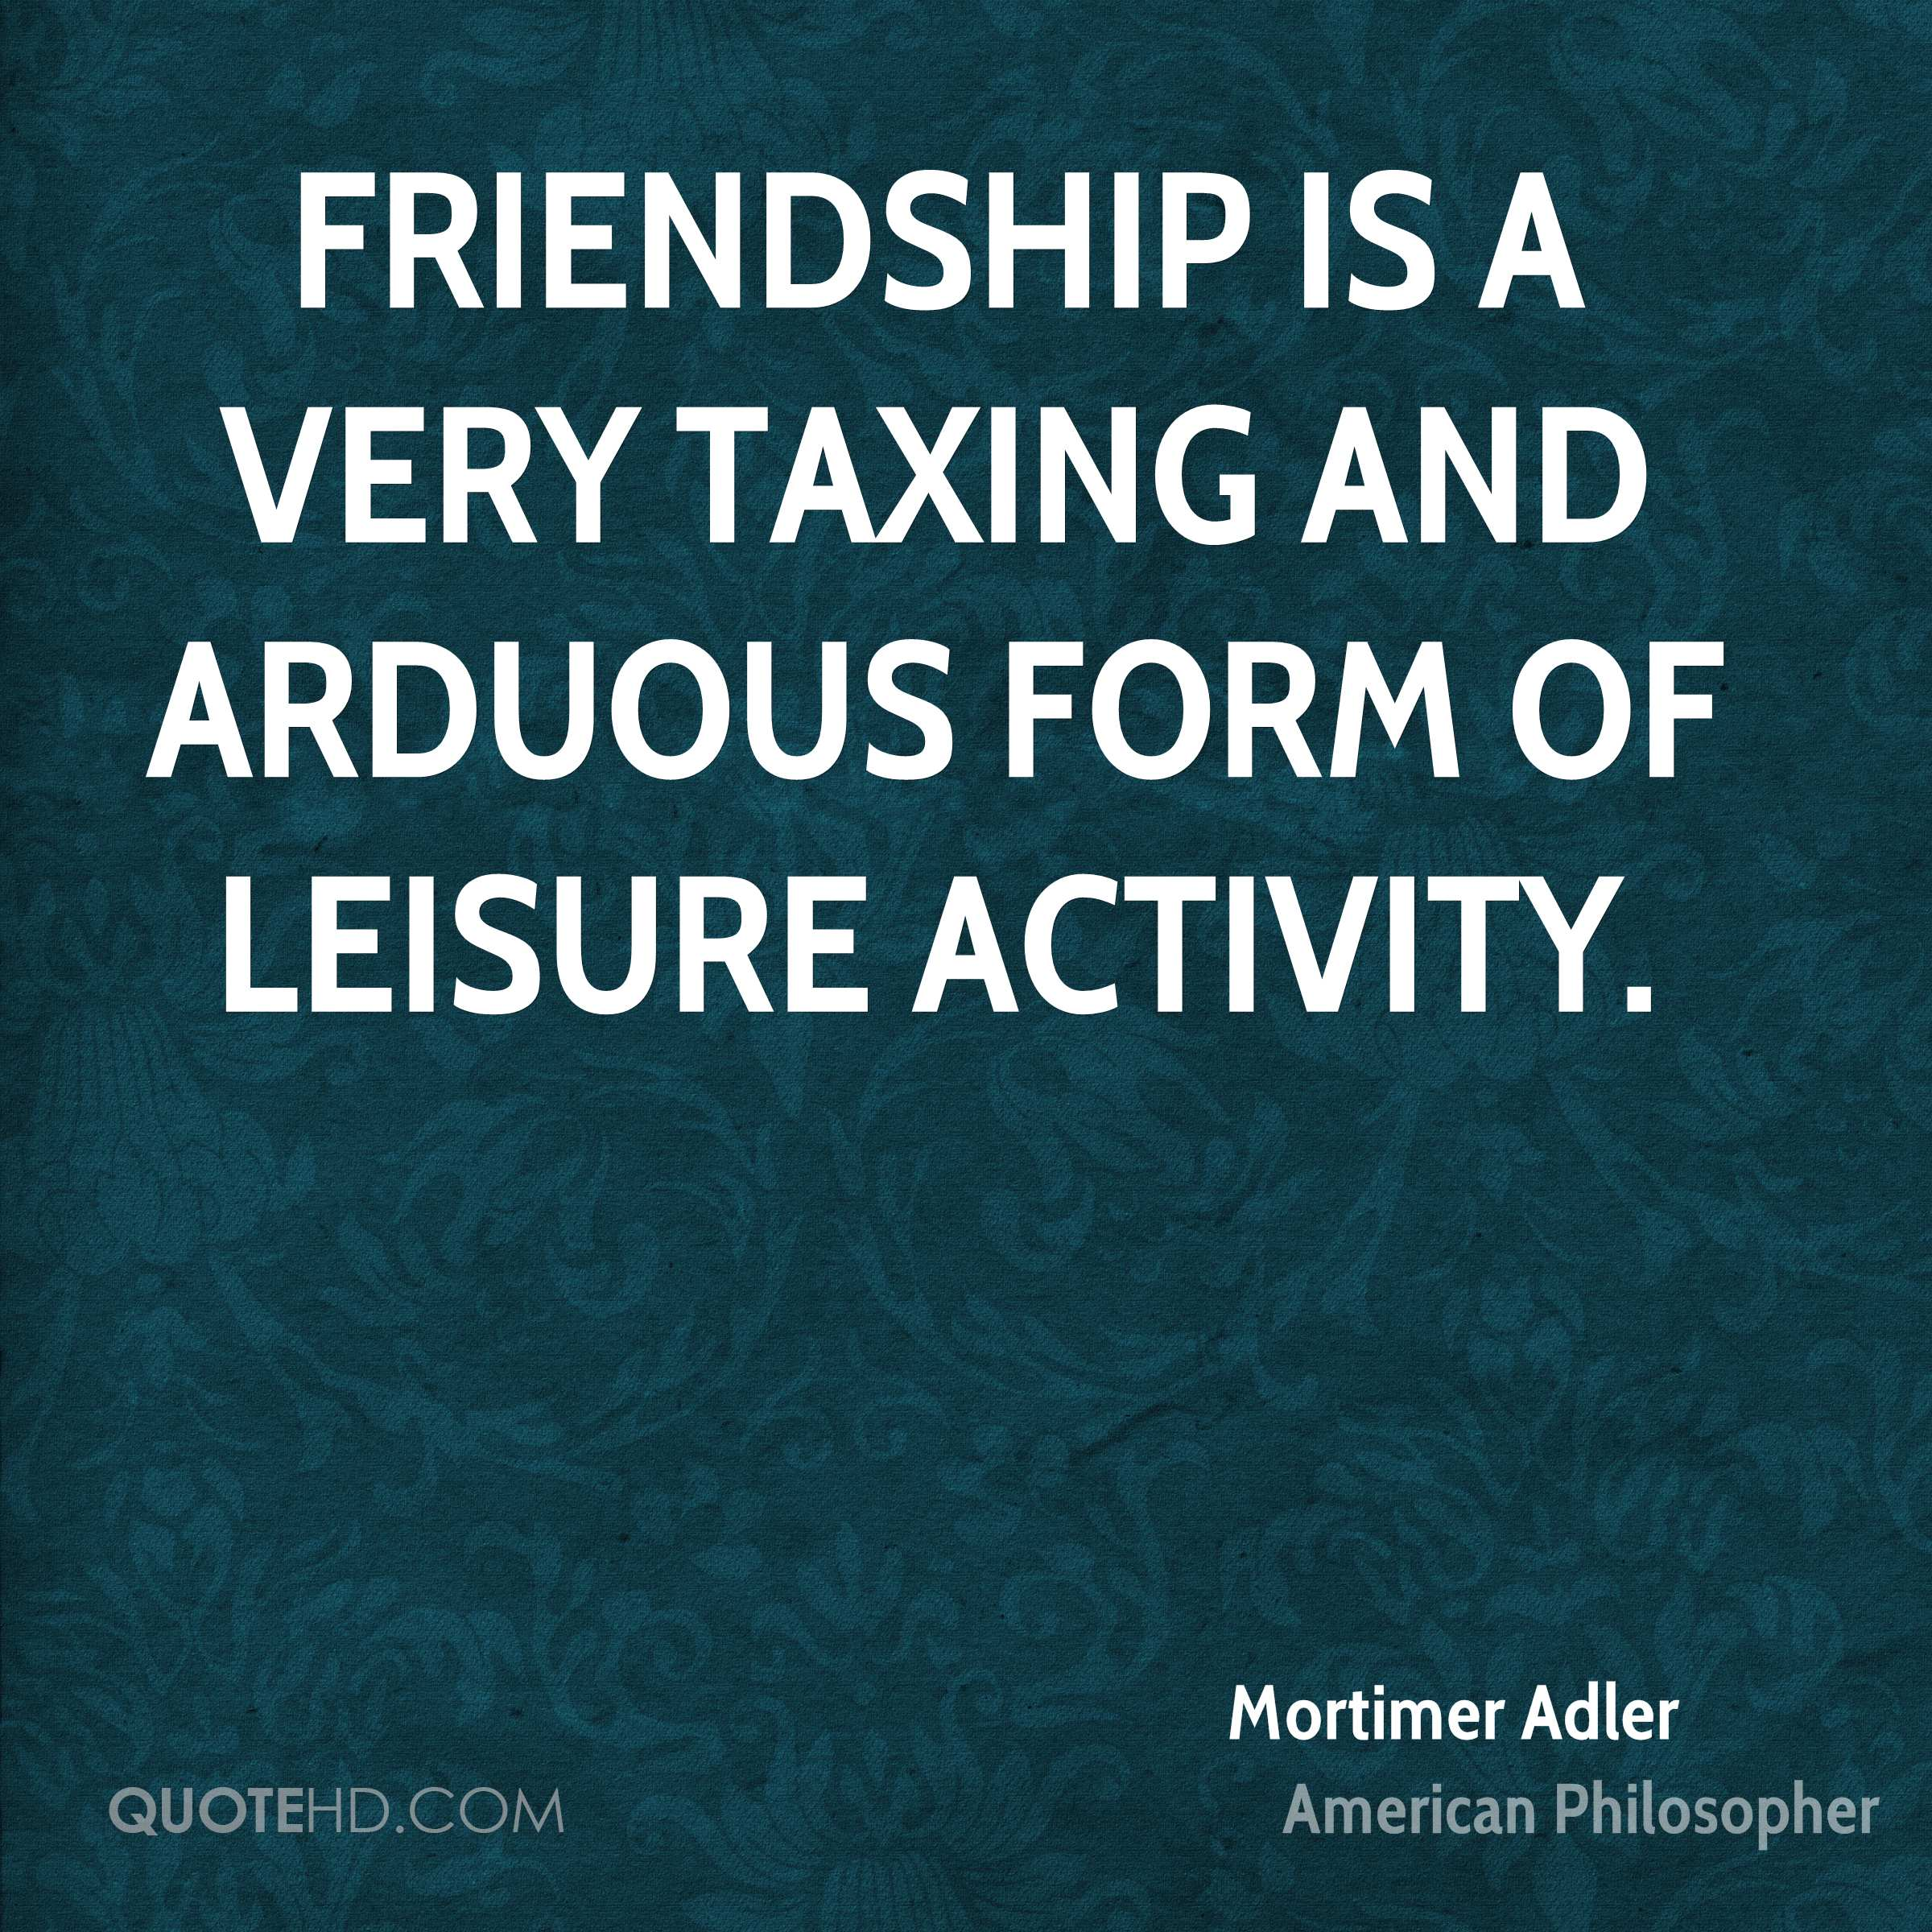 mortimer adler friendship quotes quotehd